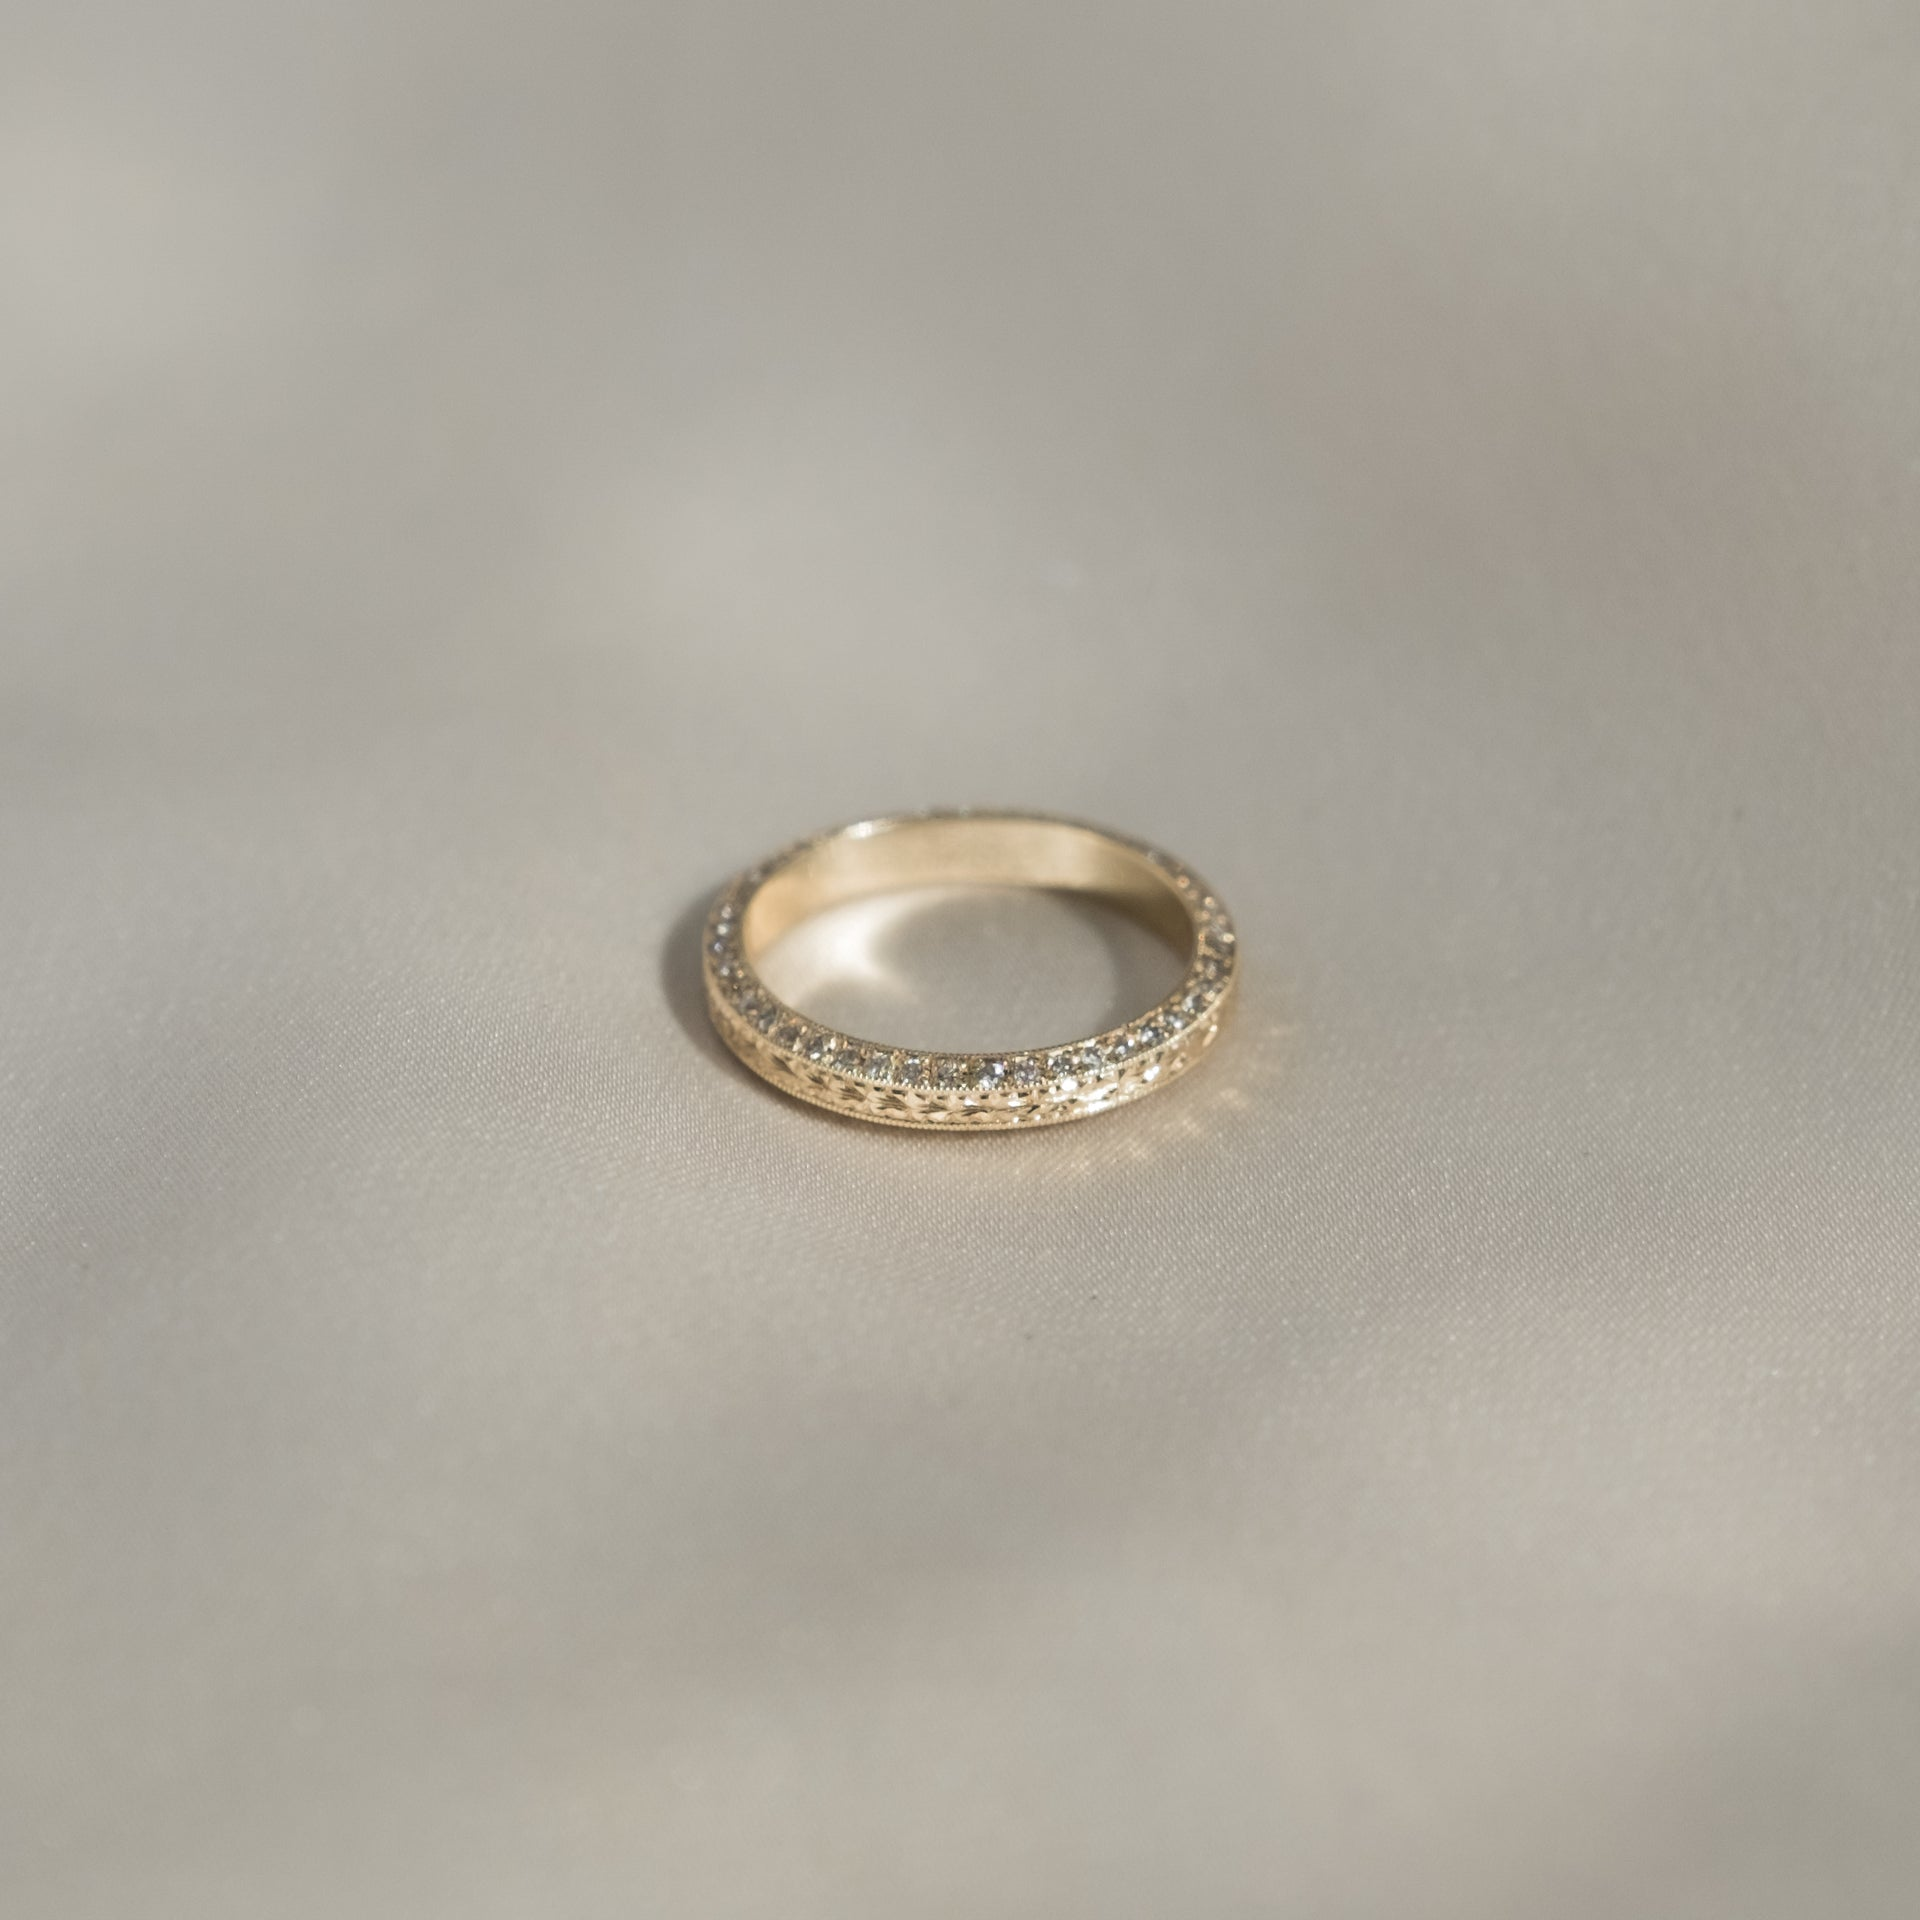 Engraved Angled Band with Diamond Sides